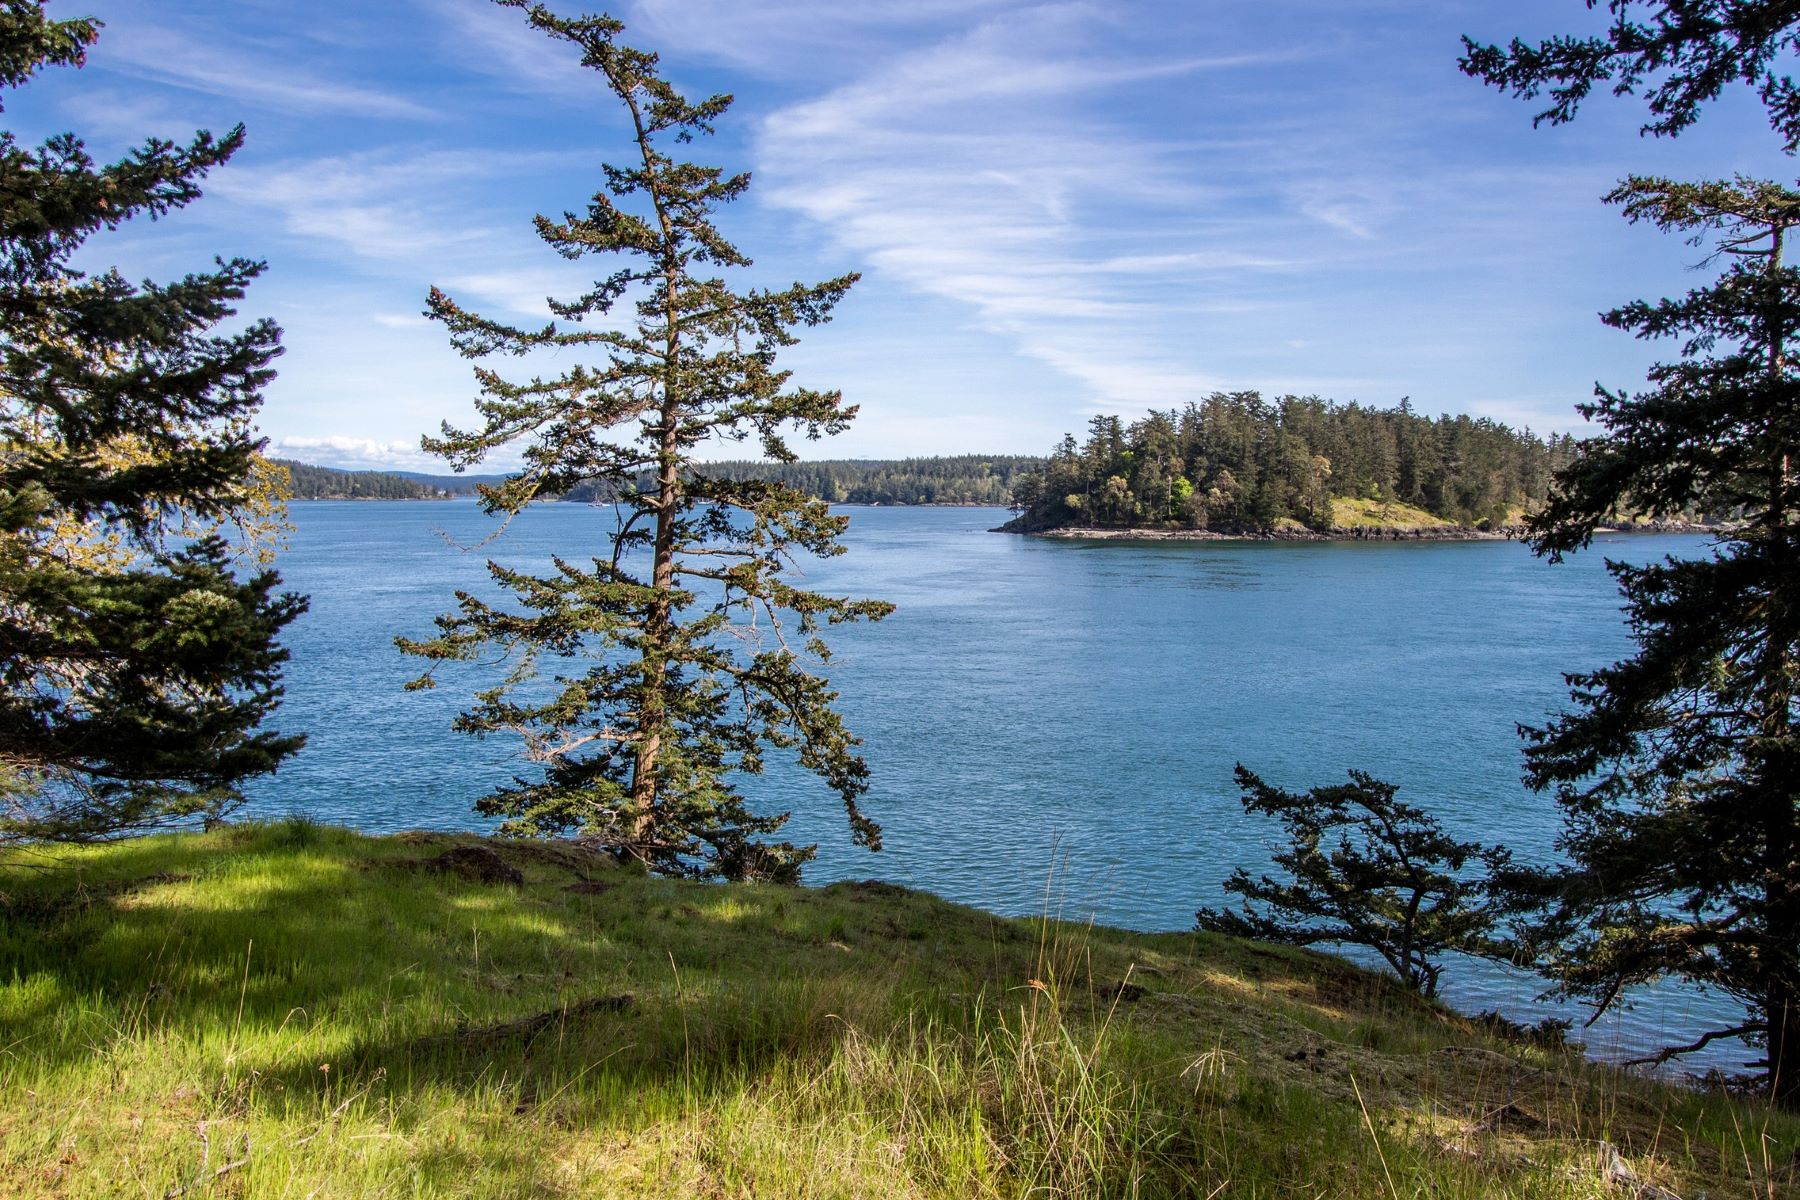 Land for Sale at South Facing Waterfront Lot 1700 Spring Point Road Deer Harbor, Washington 98243 United States